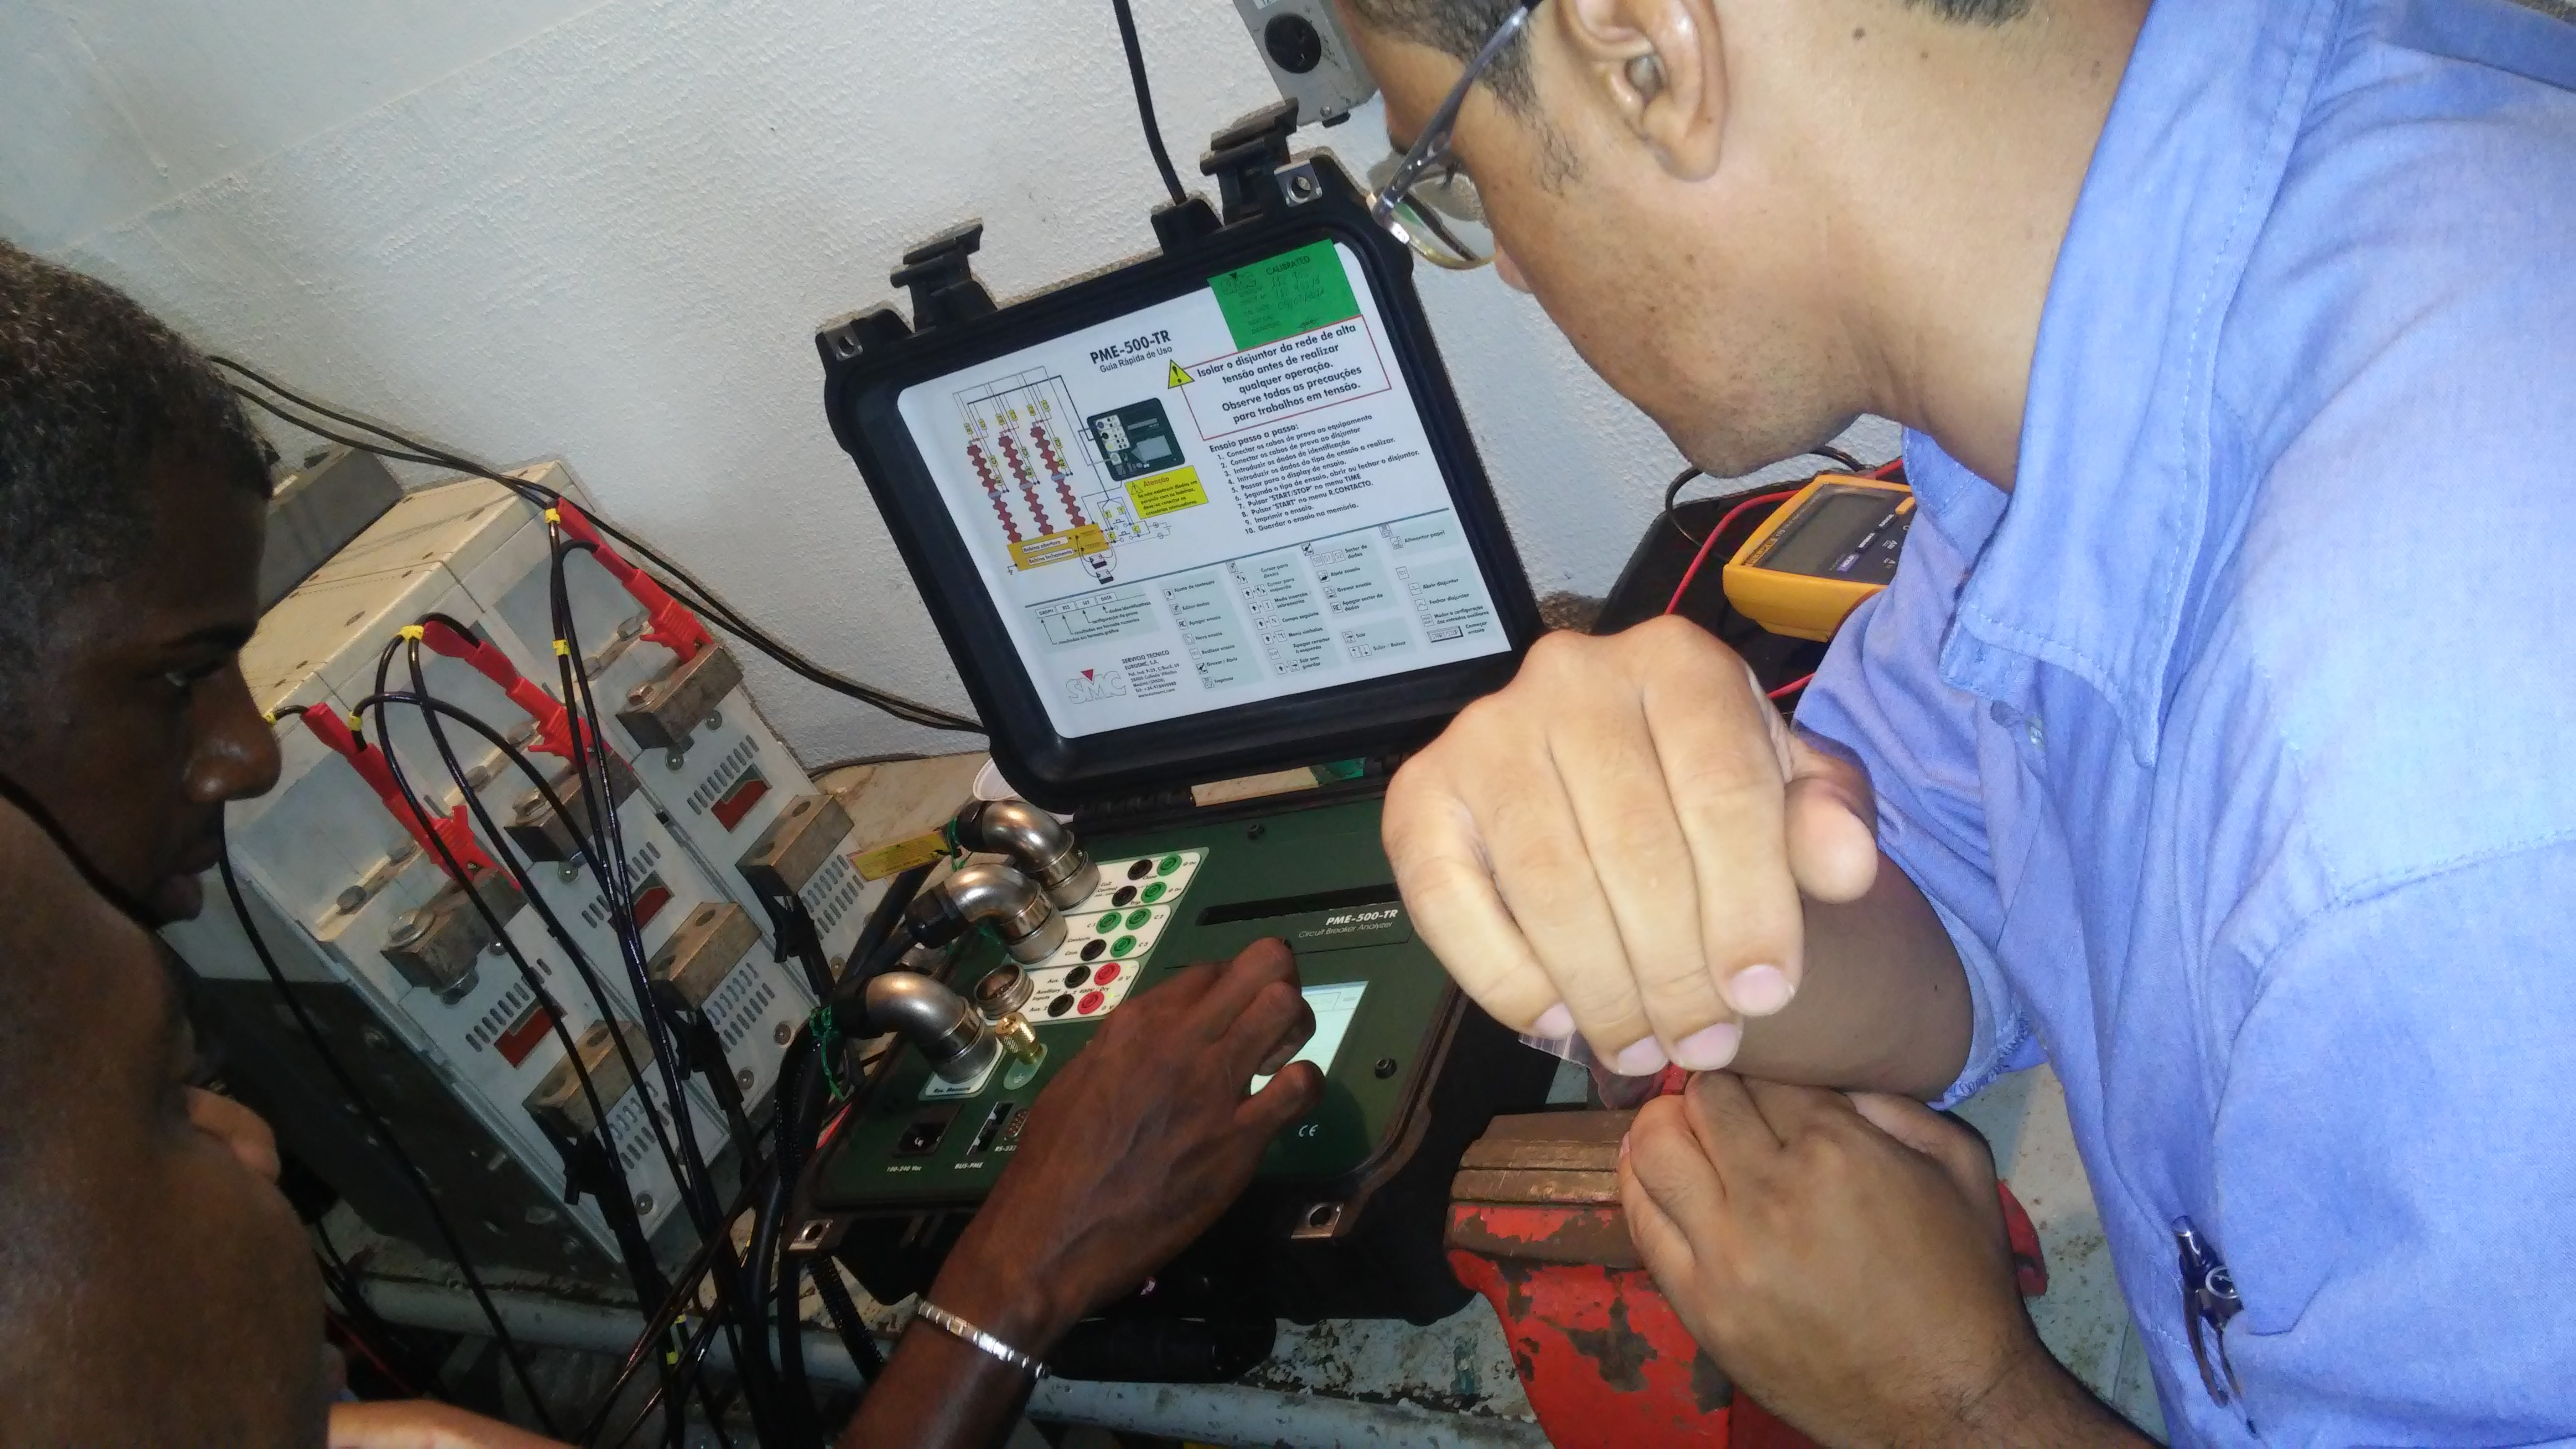 Circuit Breaker Testing Pme 500 Tr Smcint How To Test Electrical Circuits Set